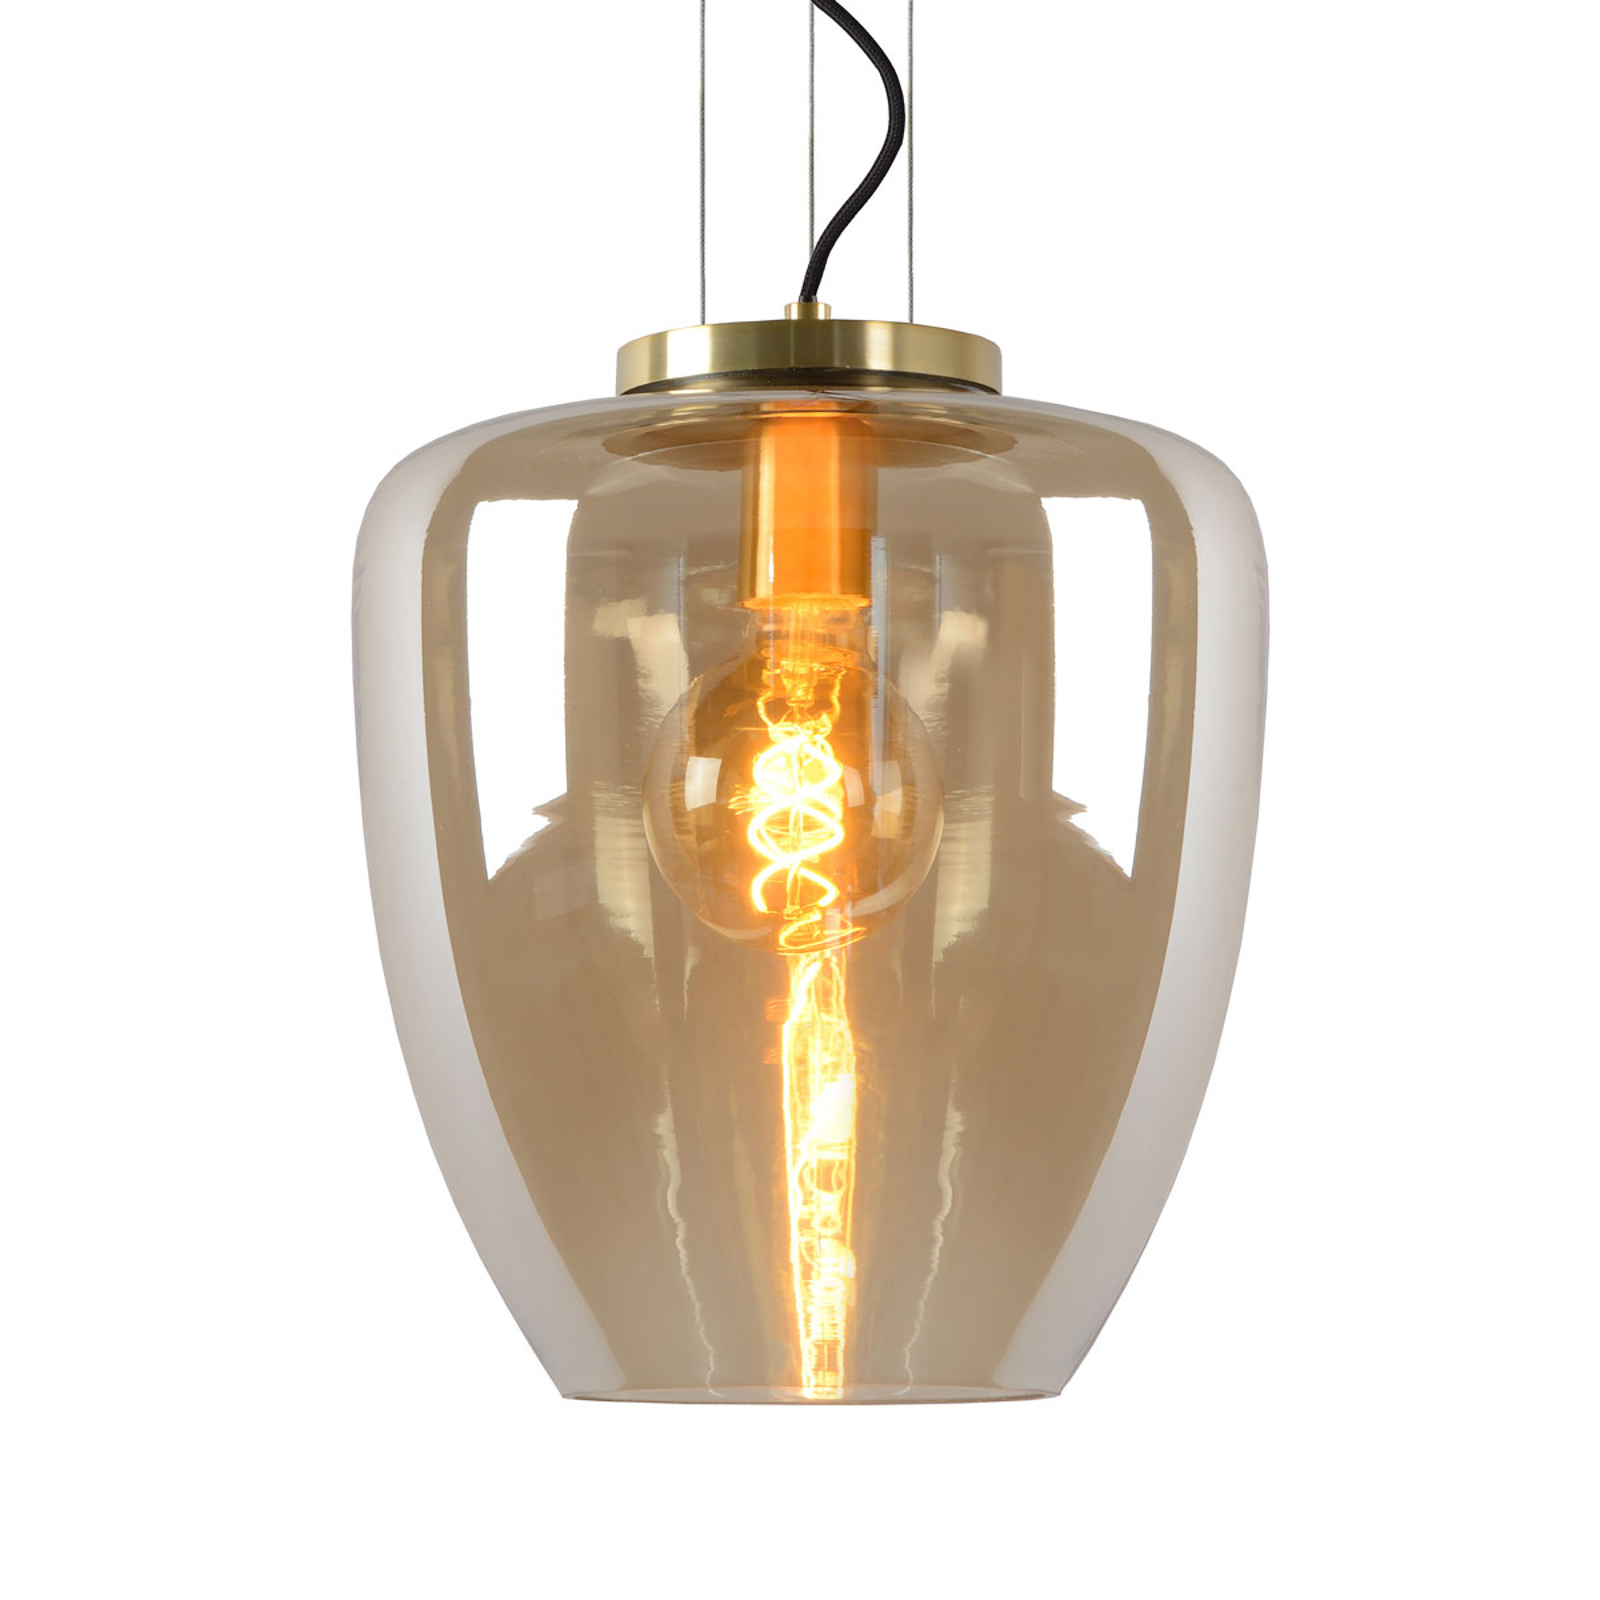 Suspension Florien en verre, ambre